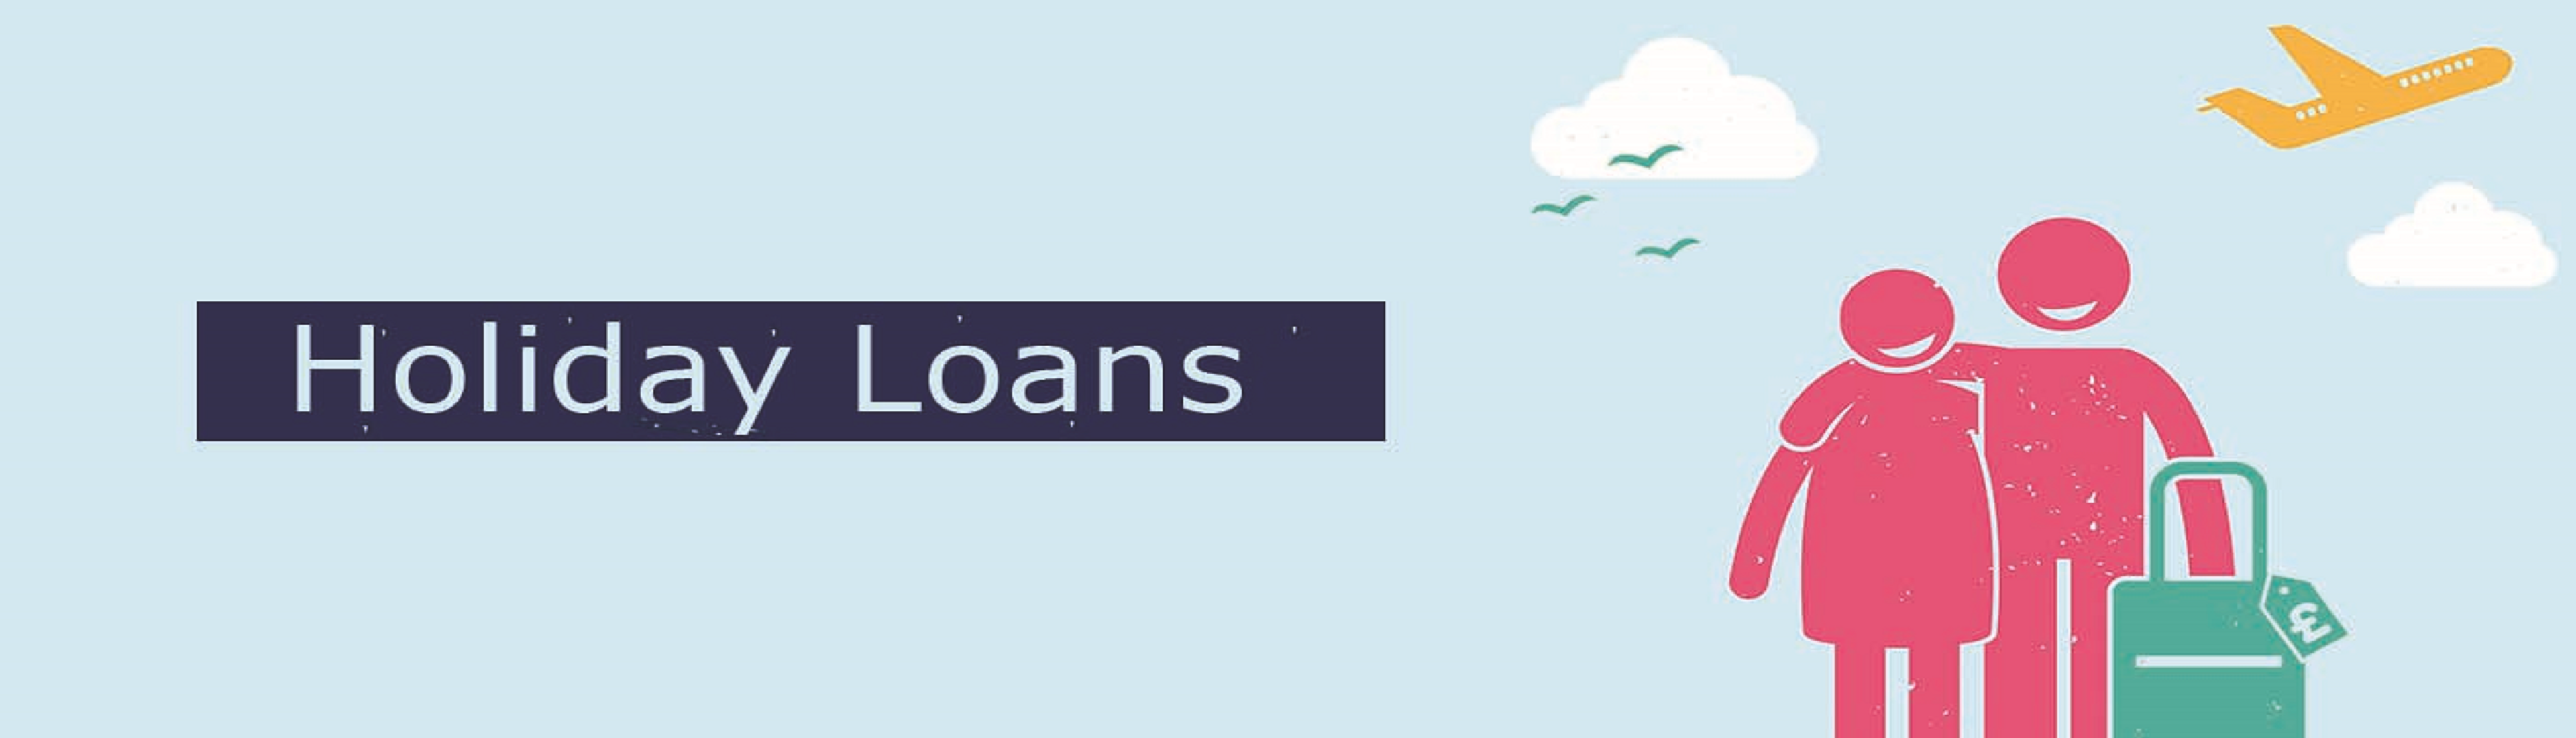 full size Holiday Loans banner